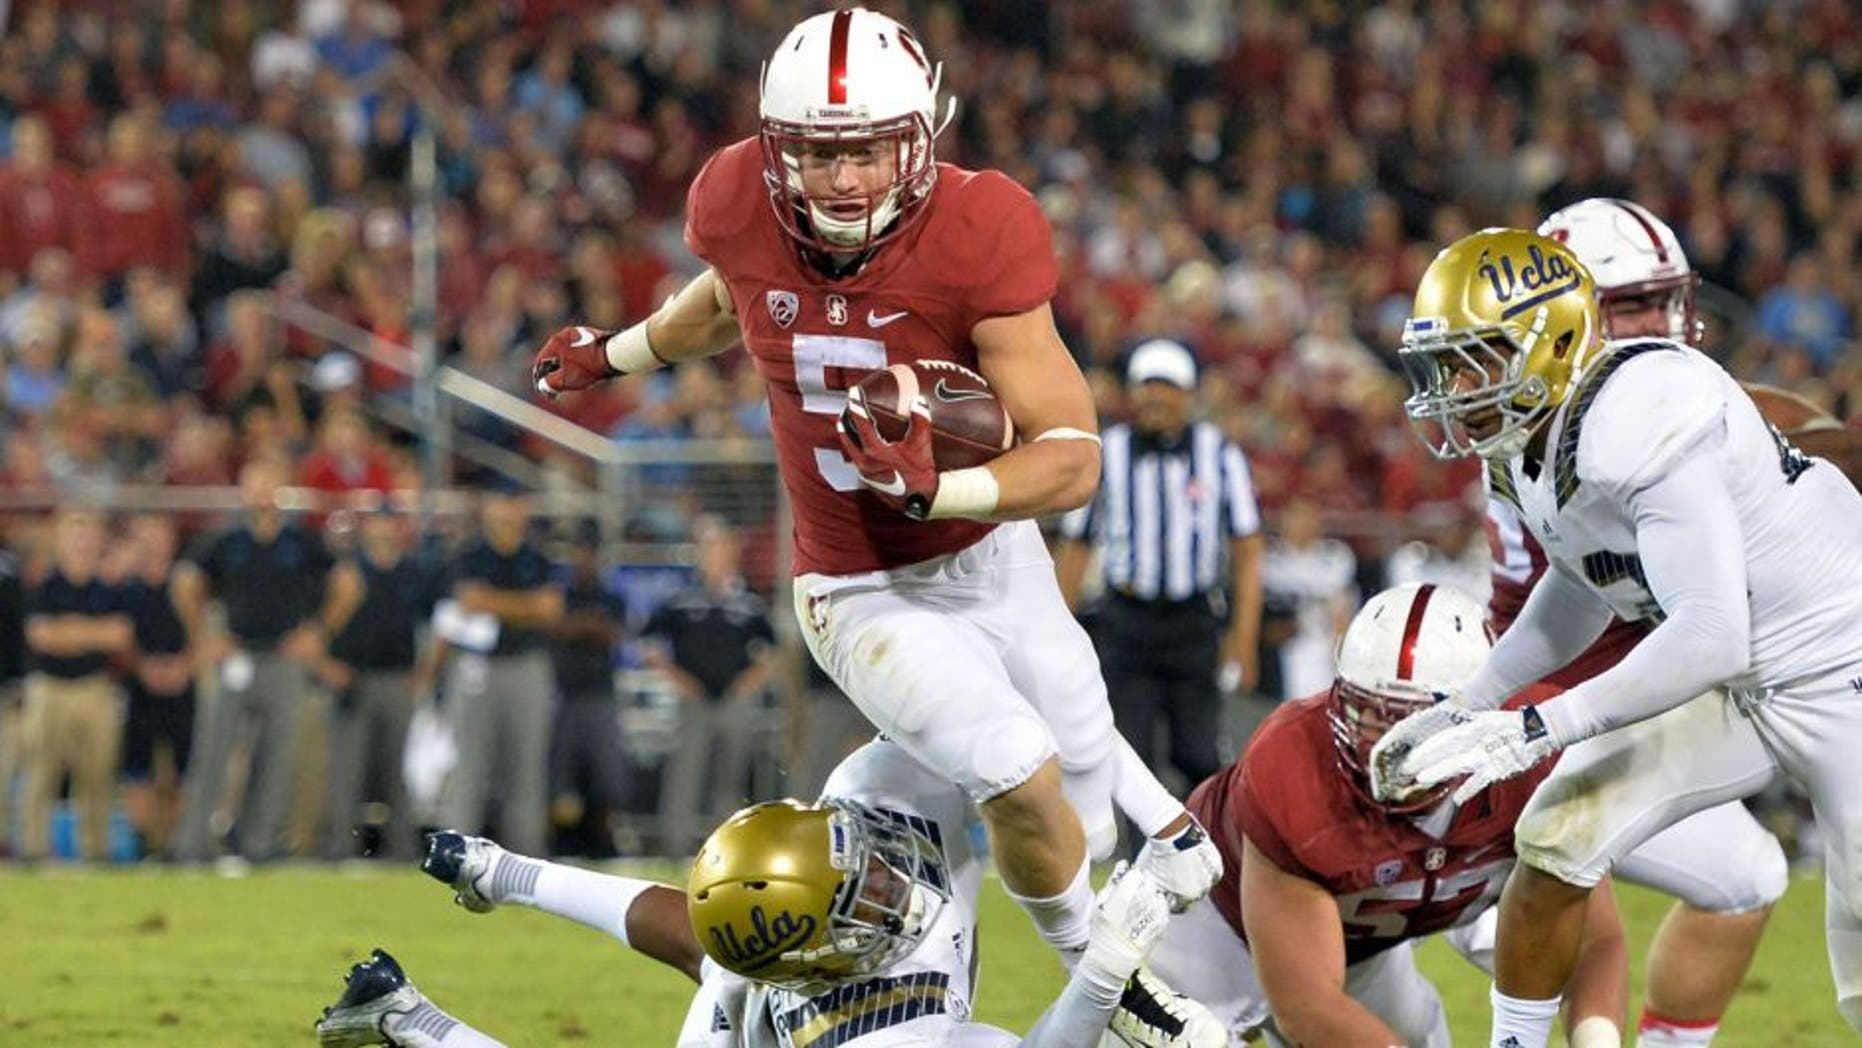 September 12, 2015; Stanford, CA, USA; Stanford Cardinal running back Christian McCaffrey (5) before the game against the Central Florida Knights at Stanford Stadium. Mandatory Credit: Kyle Terada-USA TODAY Sports